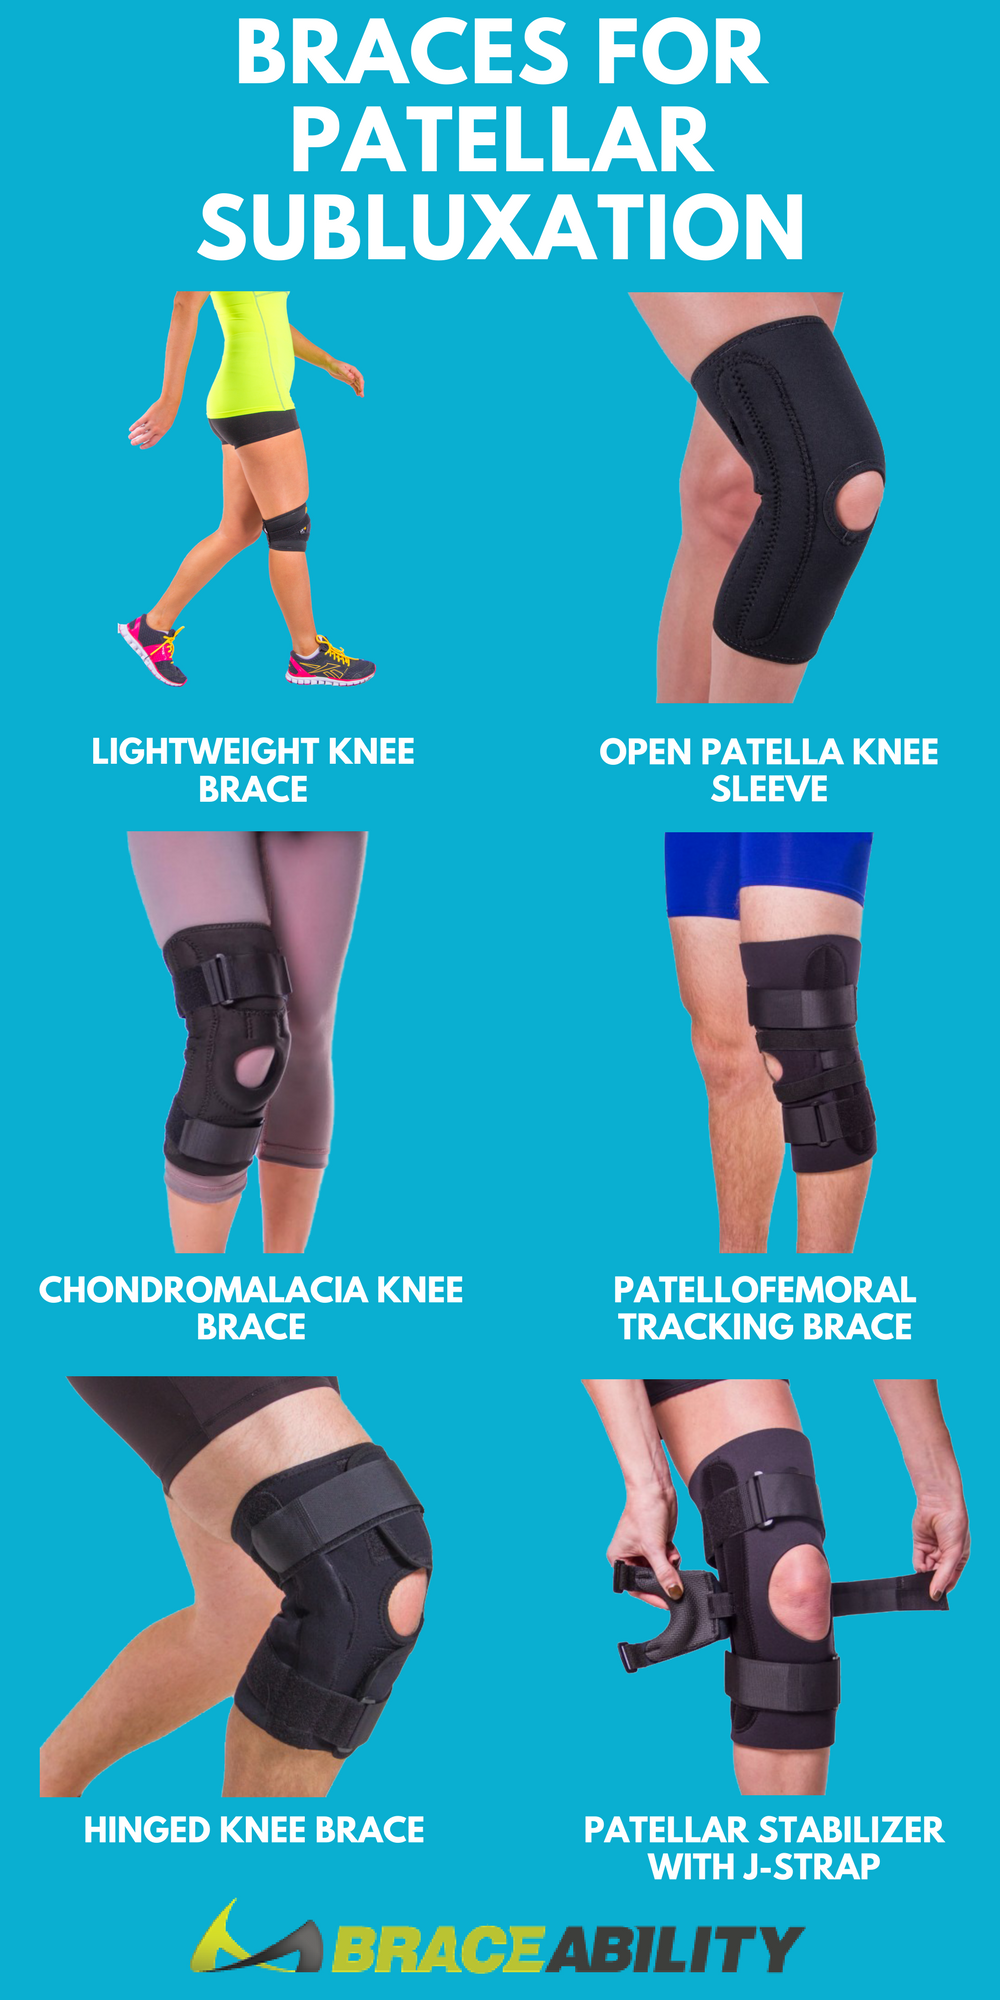 e6c8edacee Does your kneecap (patella) feel like it's moving out of position? You might  be experiencing a patellar subluxation! These knee braces can help treat ...